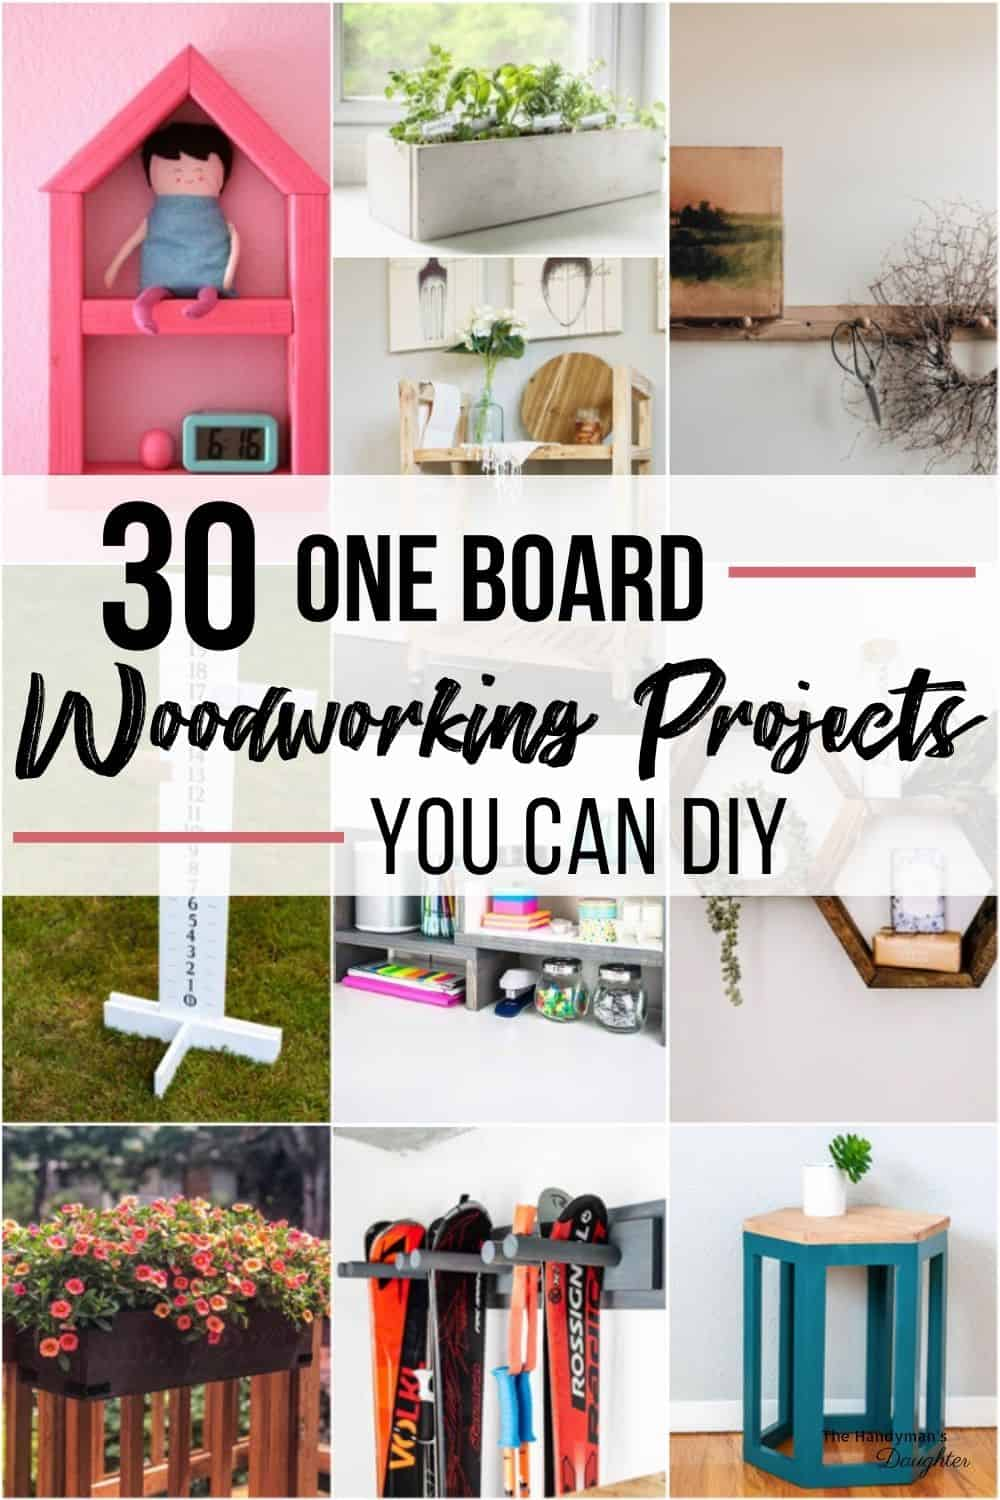 30 one board woodworking projects you can DIY